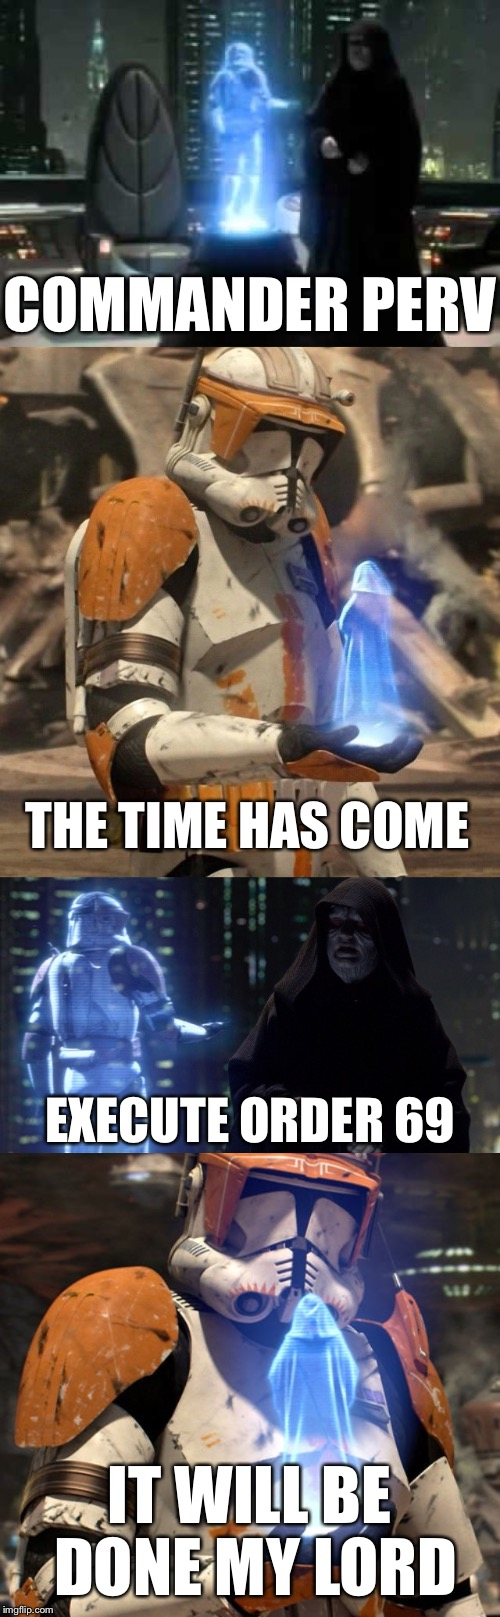 I have a job to do! | COMMANDER PERV IT WILL BE DONE MY LORD THE TIME HAS COME EXECUTE ORDER 69 | image tagged in memes,funny,star wars,star wars order 66,69,perv | made w/ Imgflip meme maker